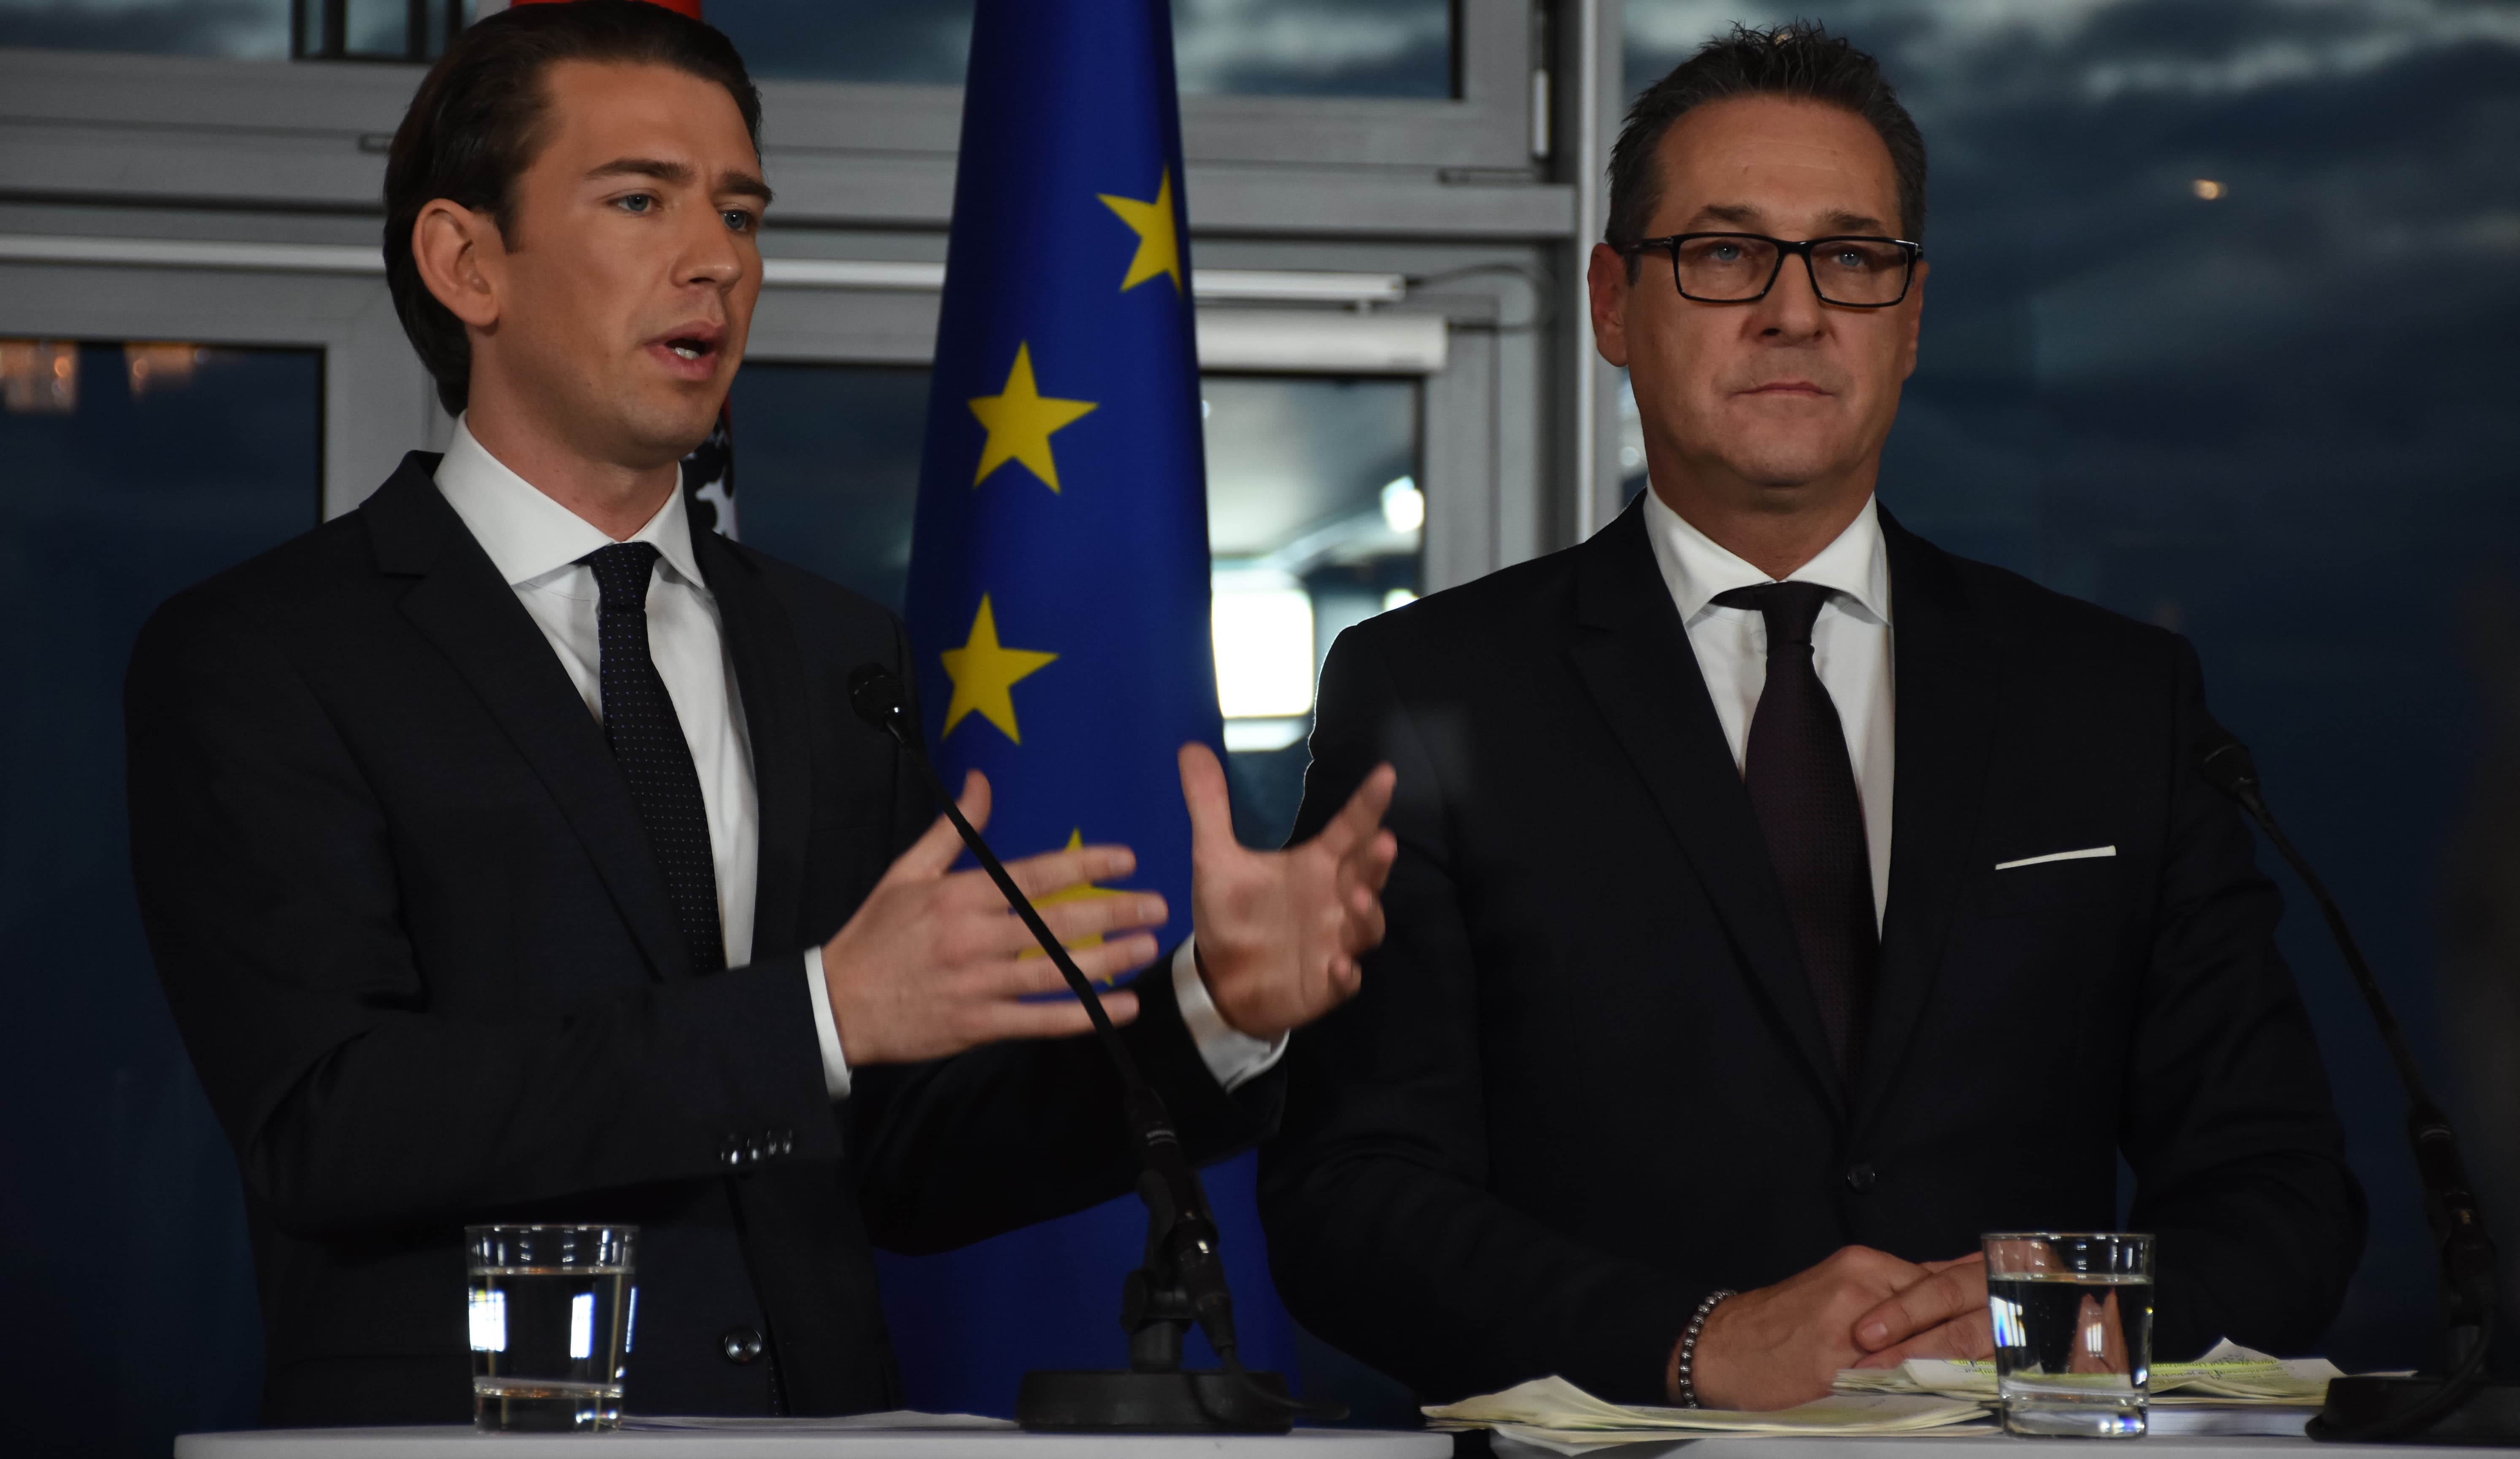 Austria's coalition partners Sebastian Kurz (left) and Heinz-Christian Strache (Photo: Askin Kiyagan/Getty)